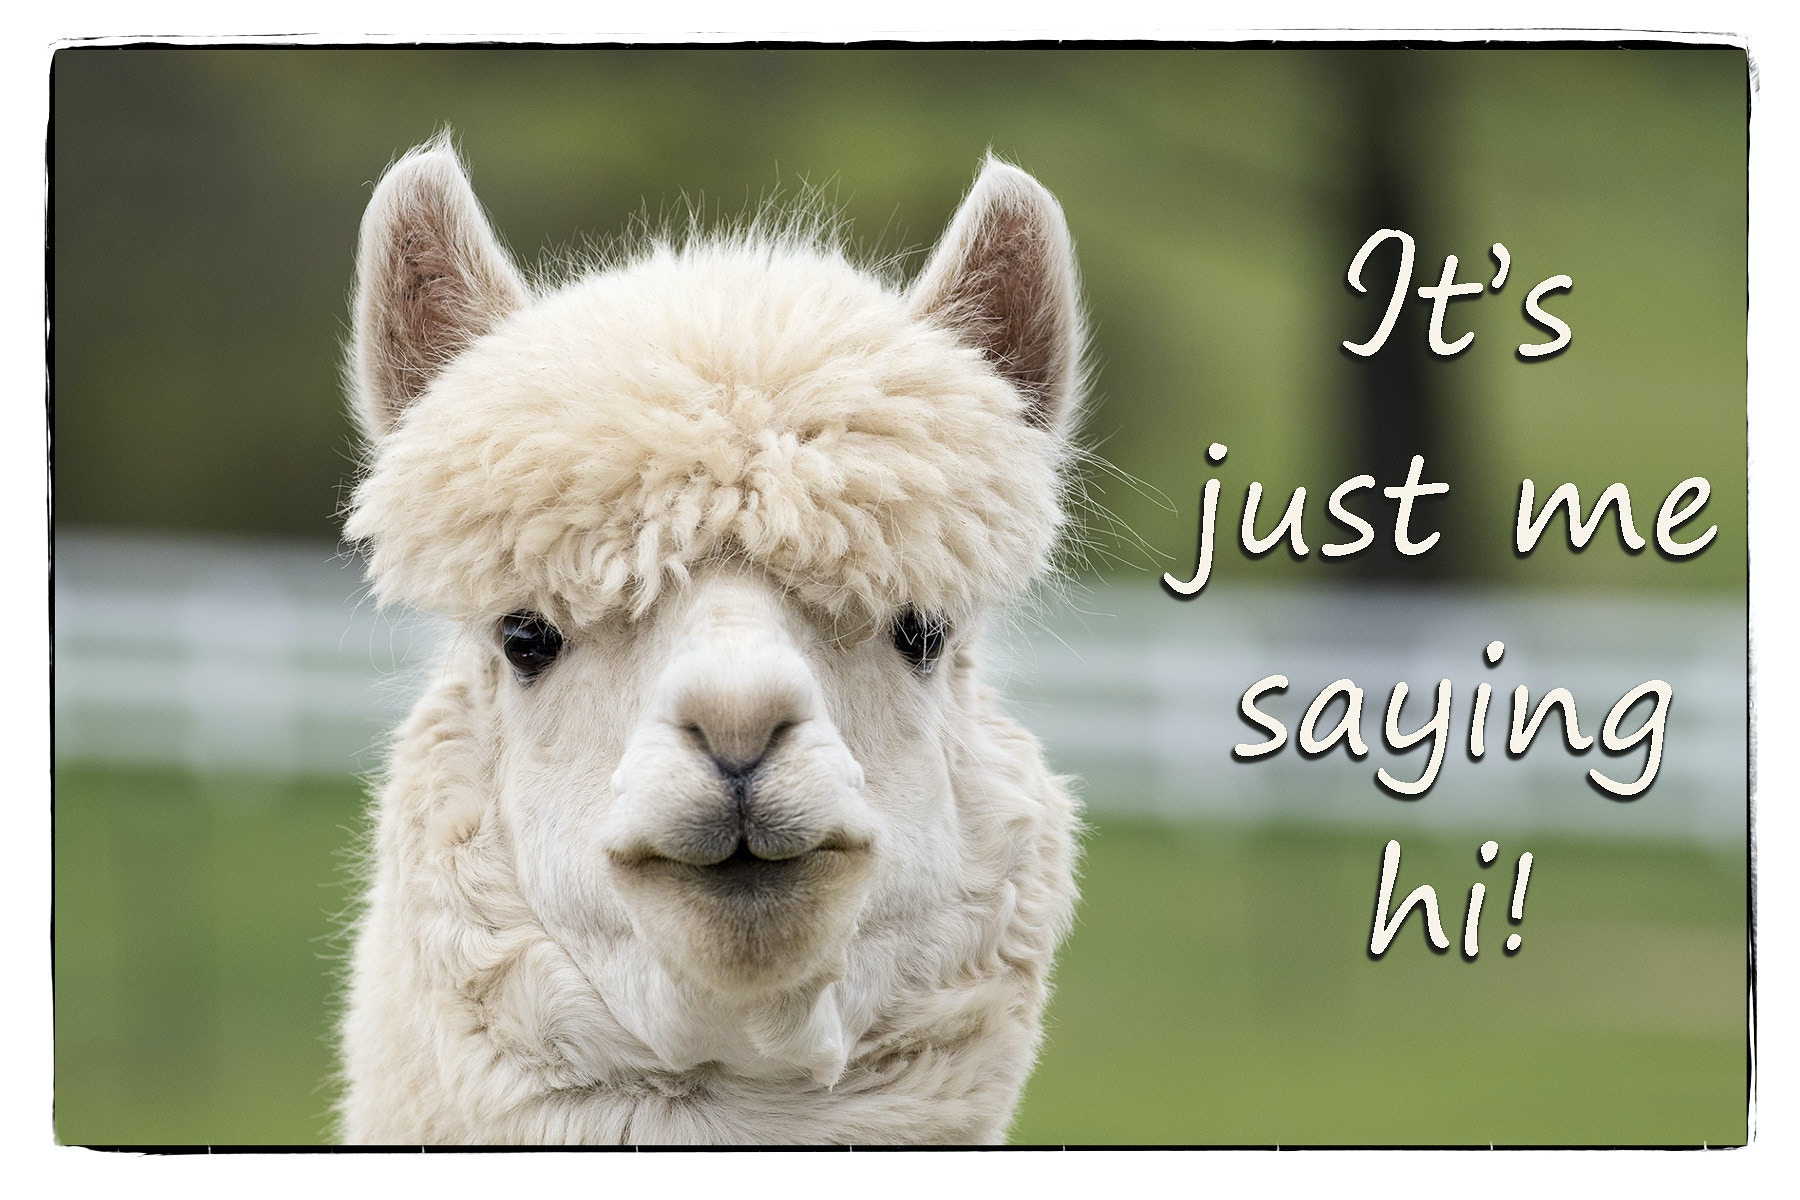 Say It With Words Farm Animal Photography Greeting Cards For